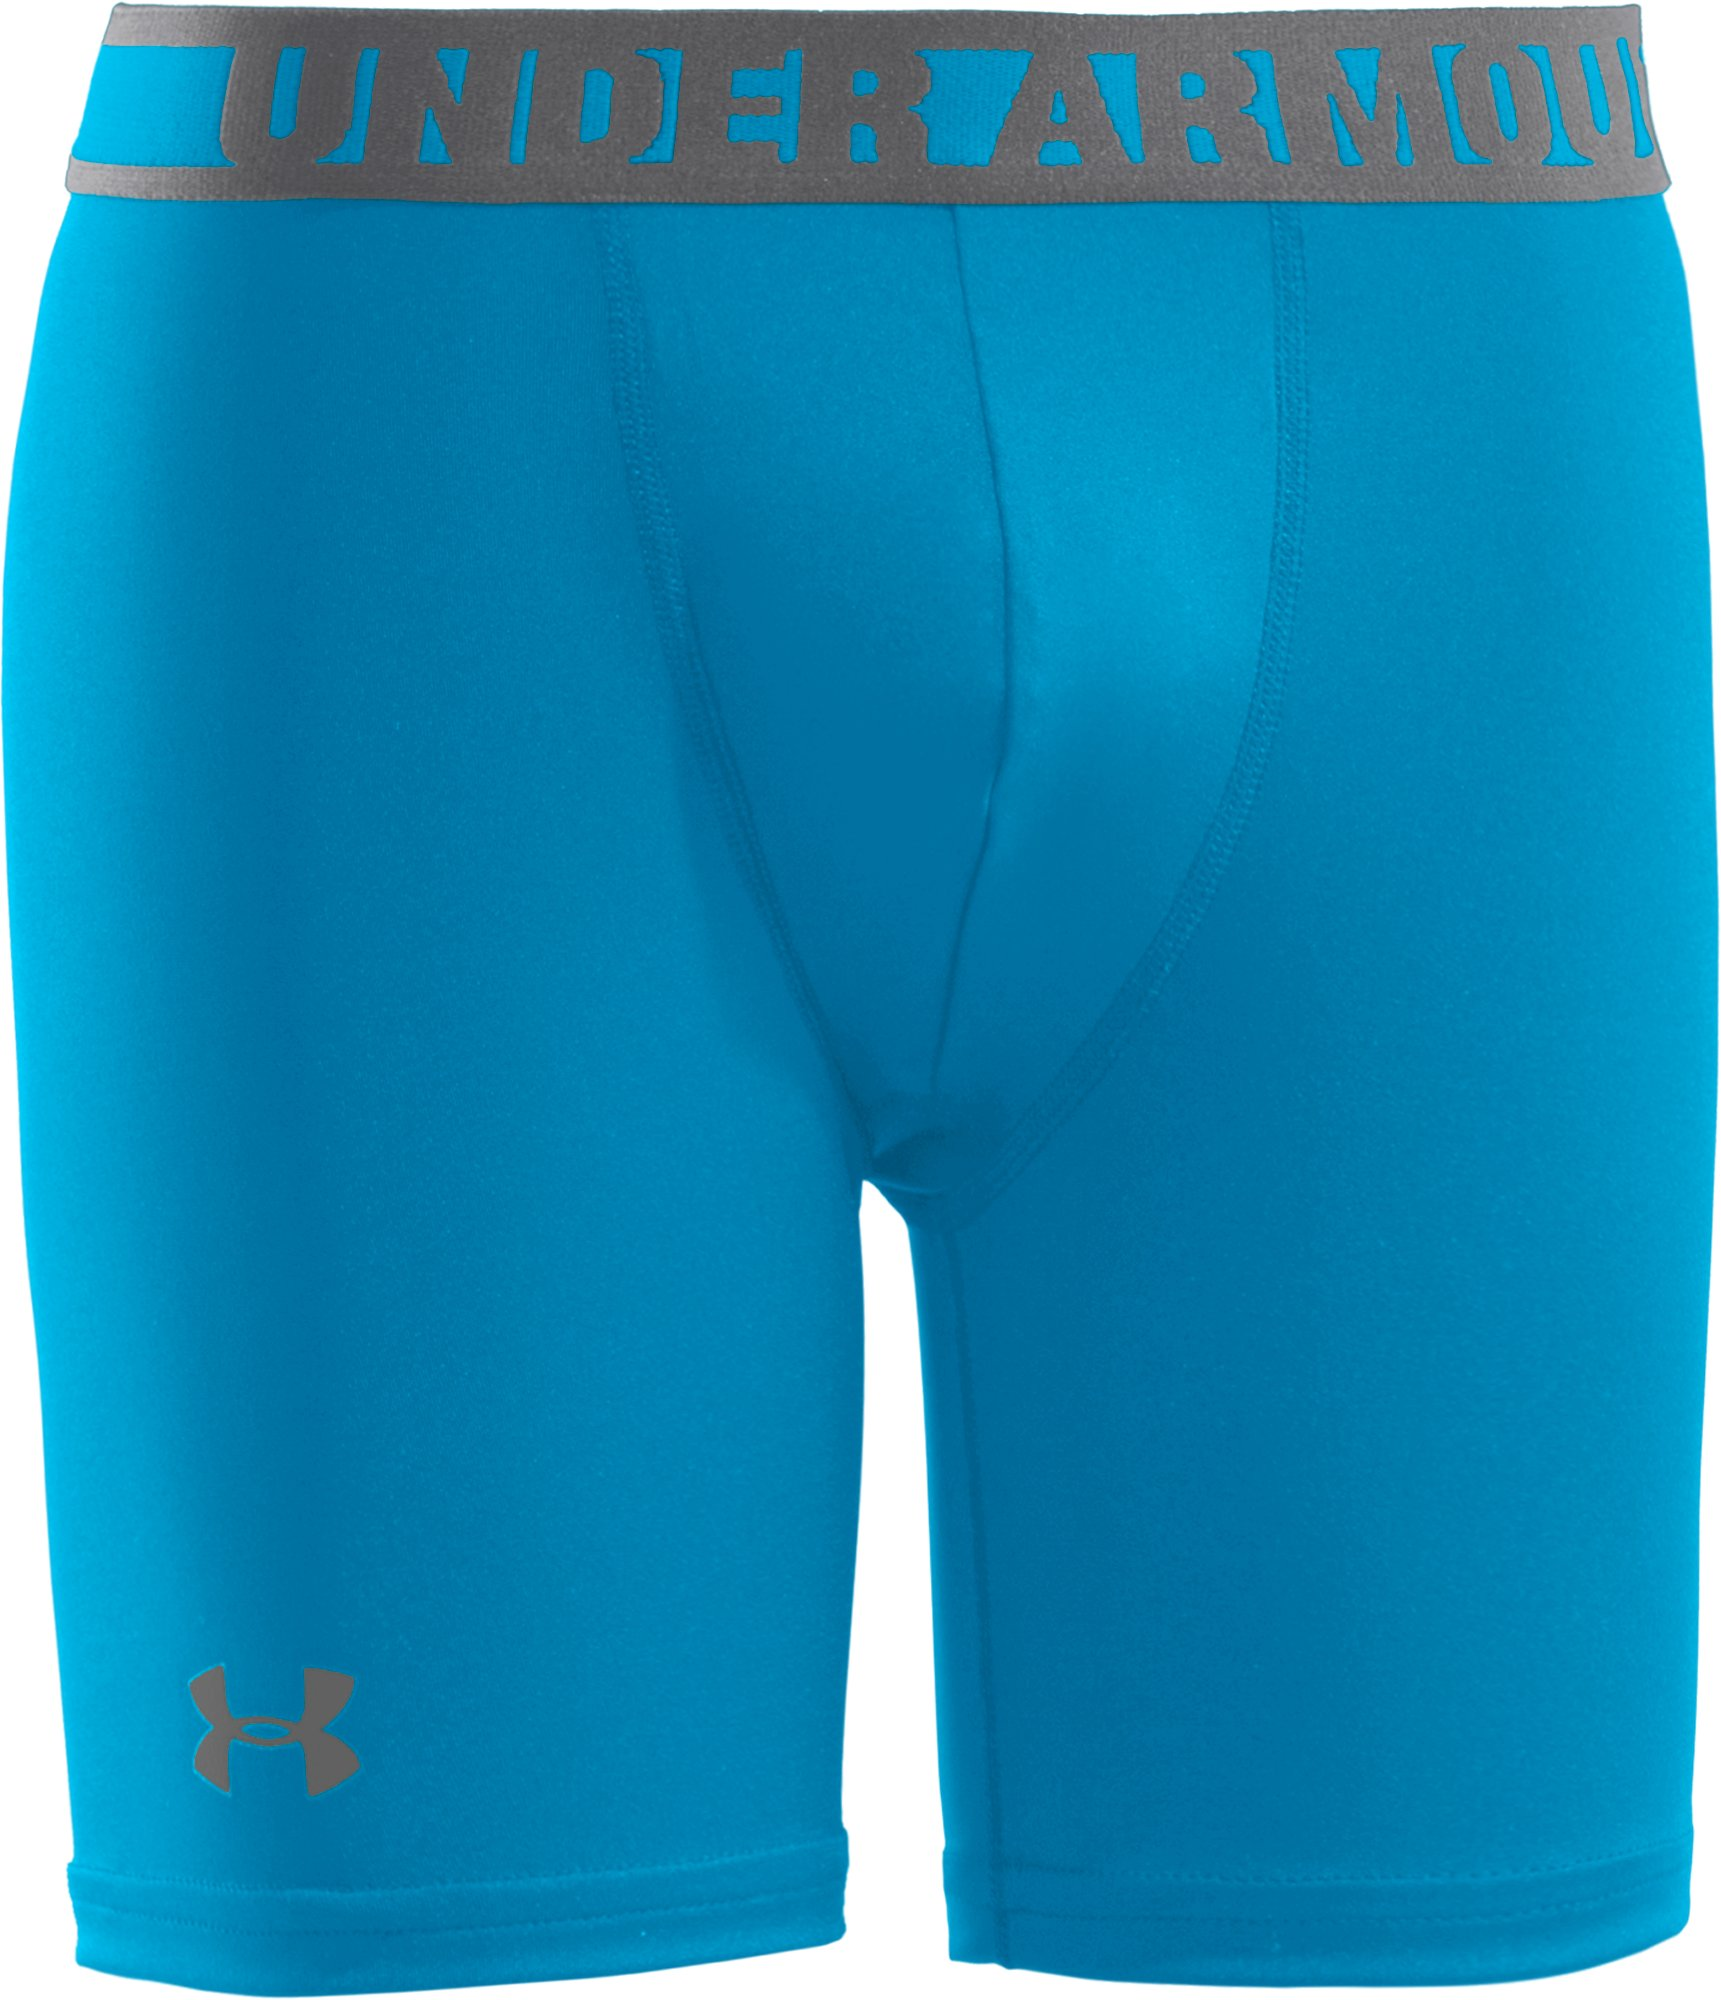 "Boys' HeatGear® Sonic 4"" Fitted Shorts, PIRATE BLUE, zoomed image"